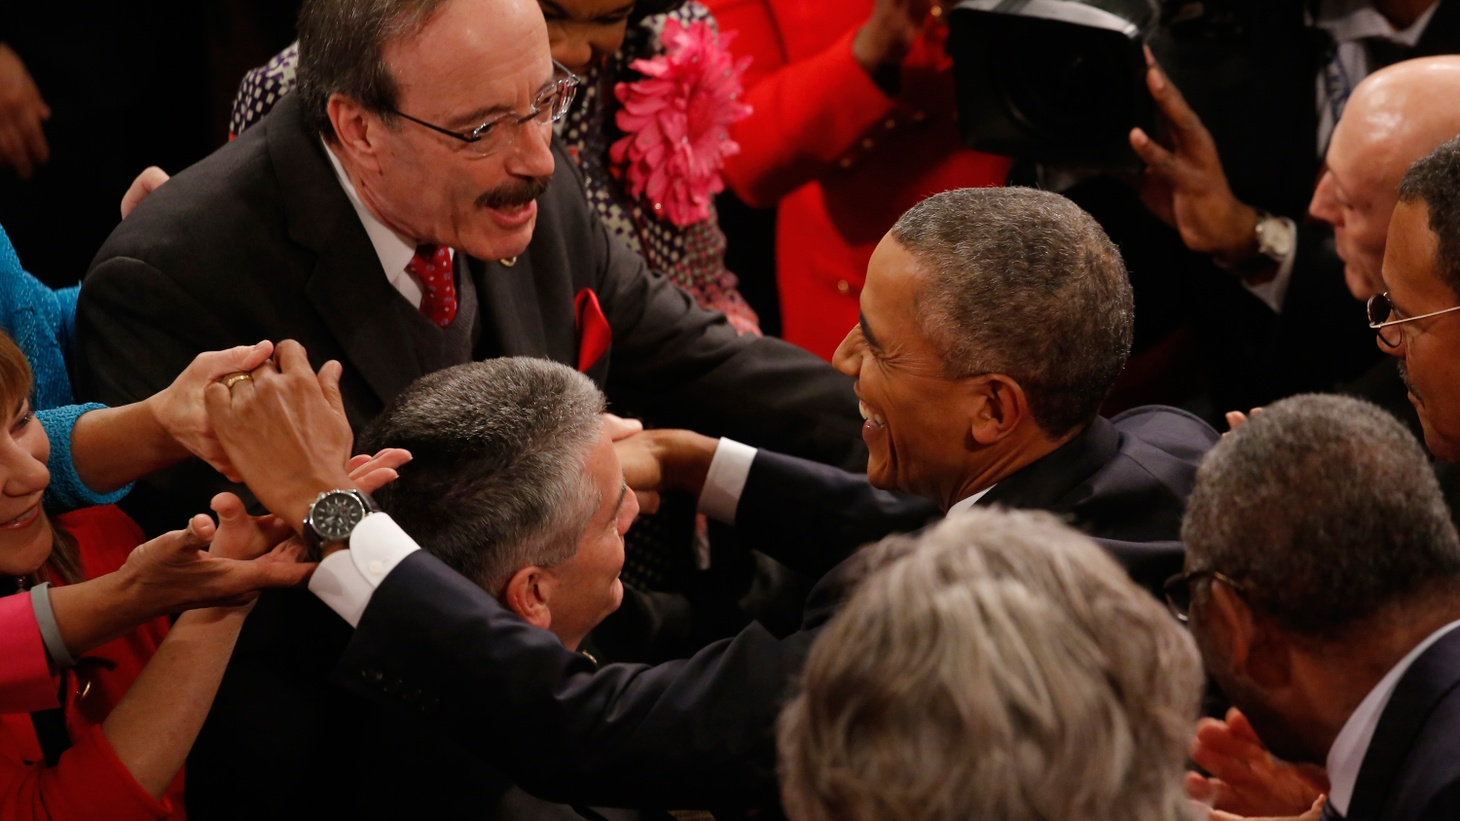 In a relentlessly positive speech last night, President Obama contradicted his Republican critics — but he also took note of widespread fear and uncertainty. We hear more about the State of the Union address and the campaign to elect the next president.